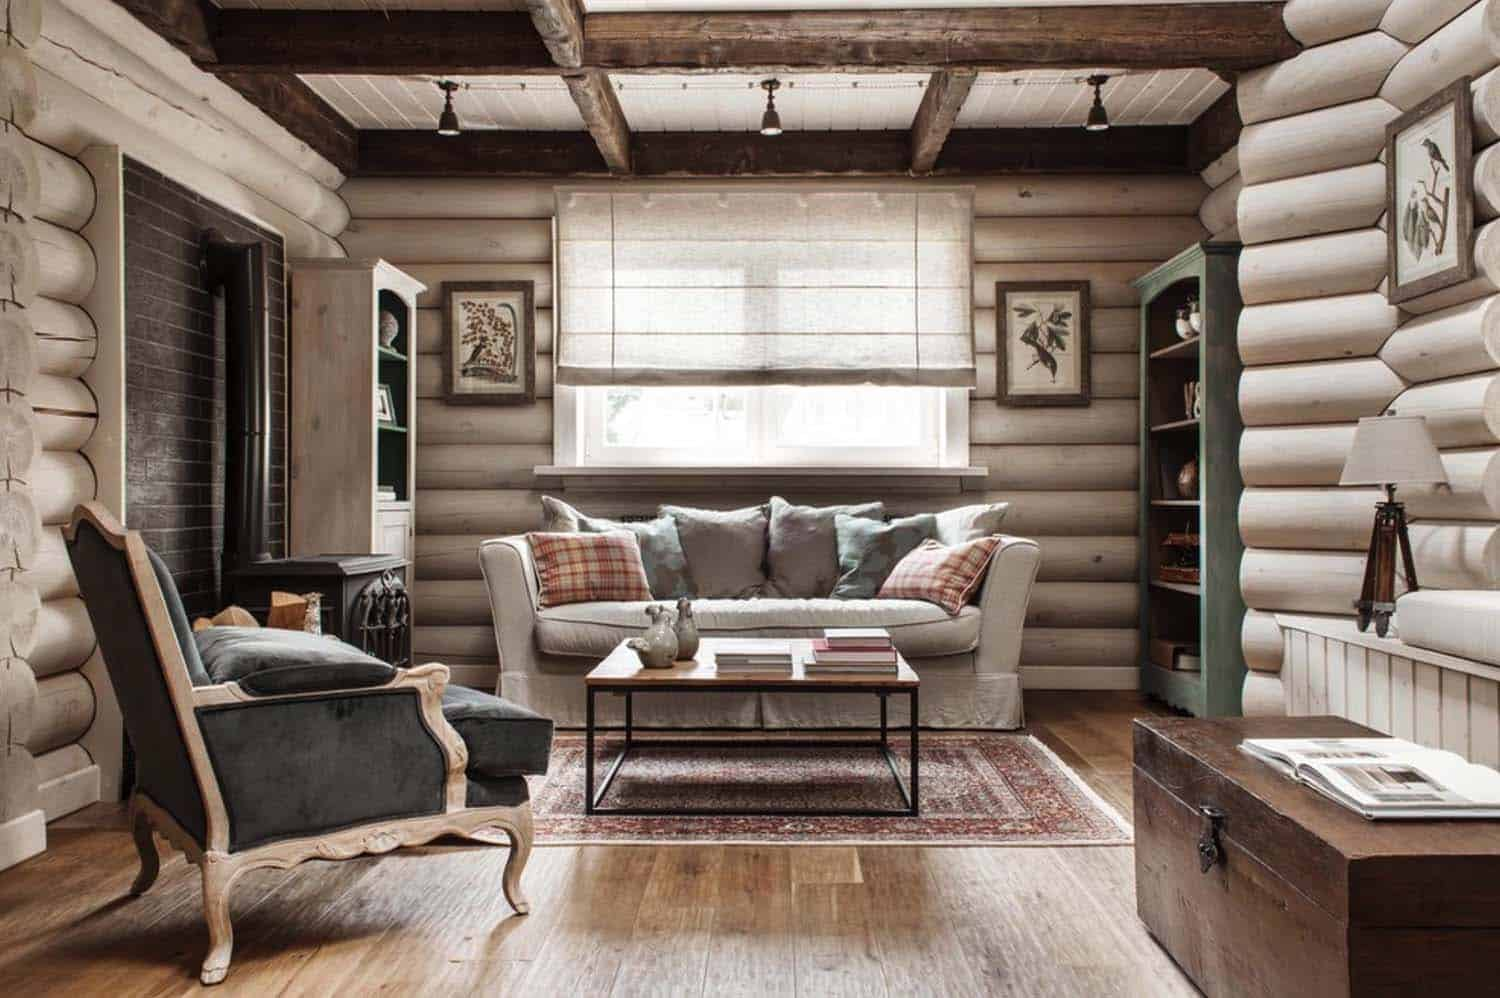 Rustic-chic log cabin style home in the countryside of Moscow